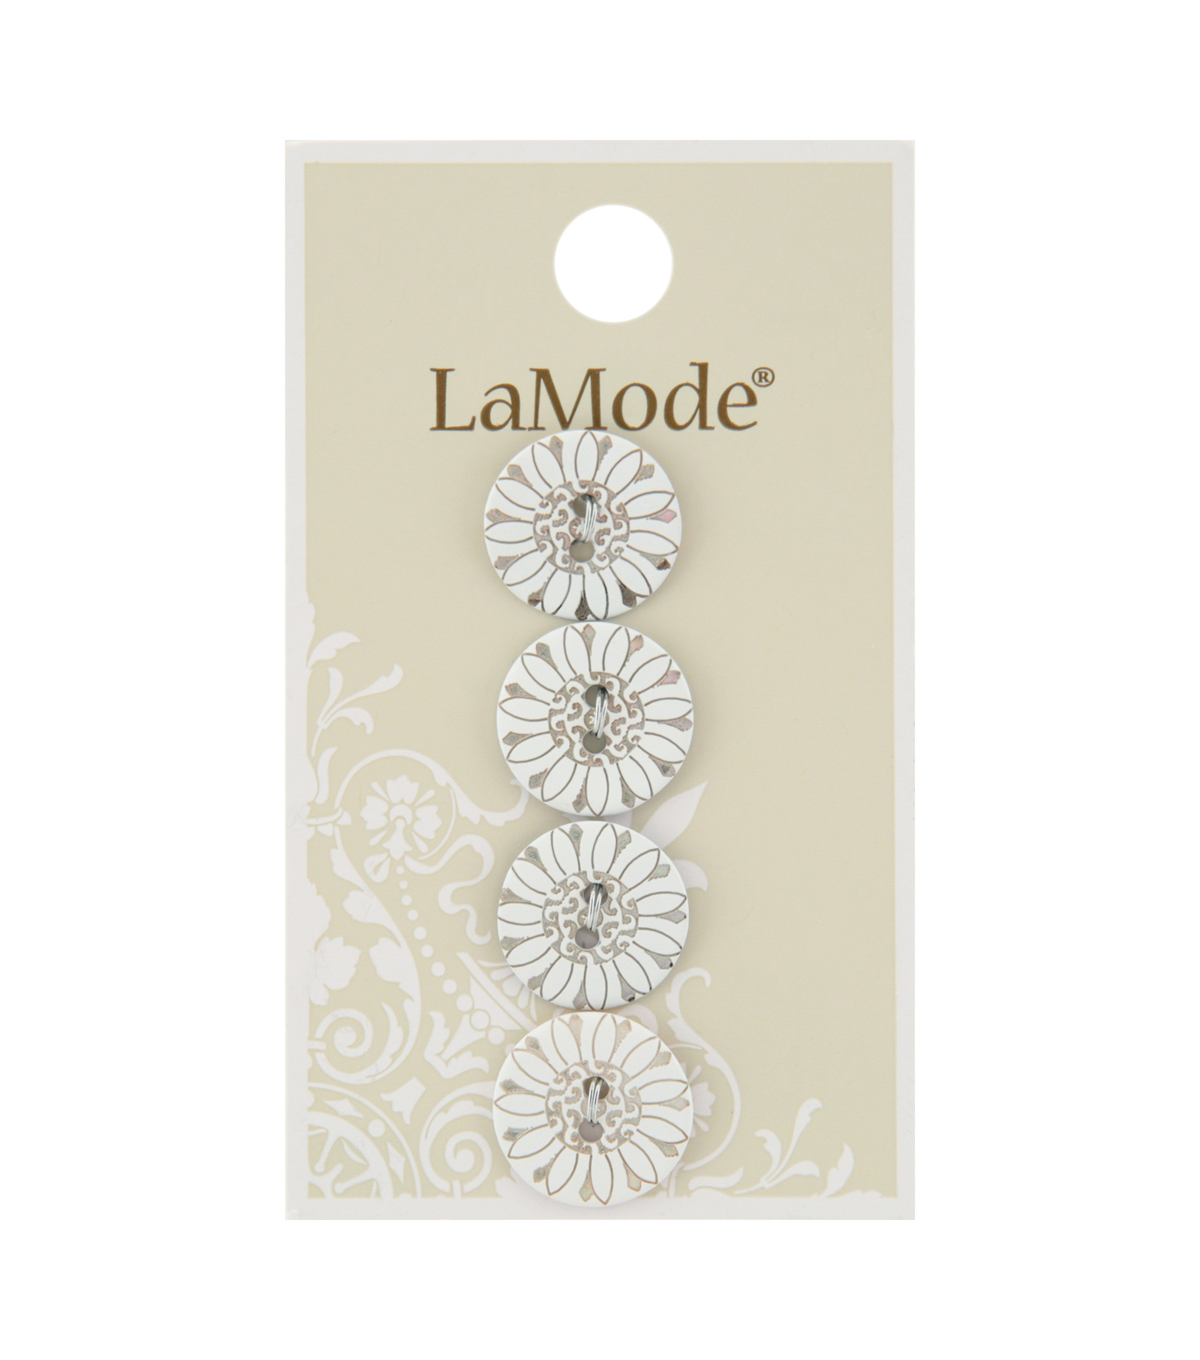 LaMode 5/8\u0022 Button-White Agoya Shell 2 Hole with Flower Design